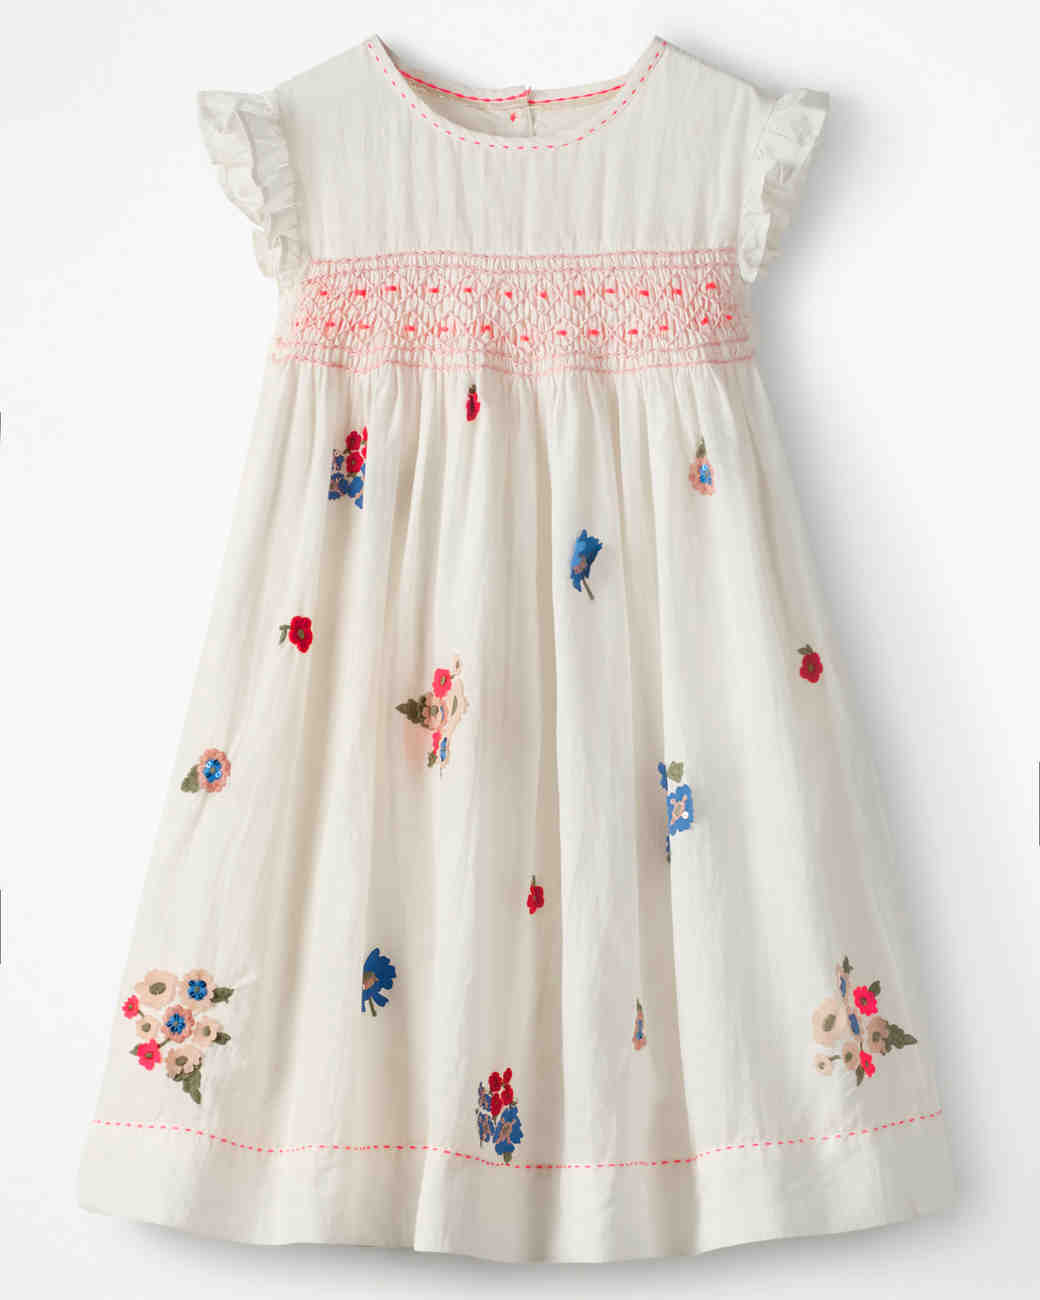 Short Sleeve Flower Girl Dress, Boden Floral Embroidered Dress